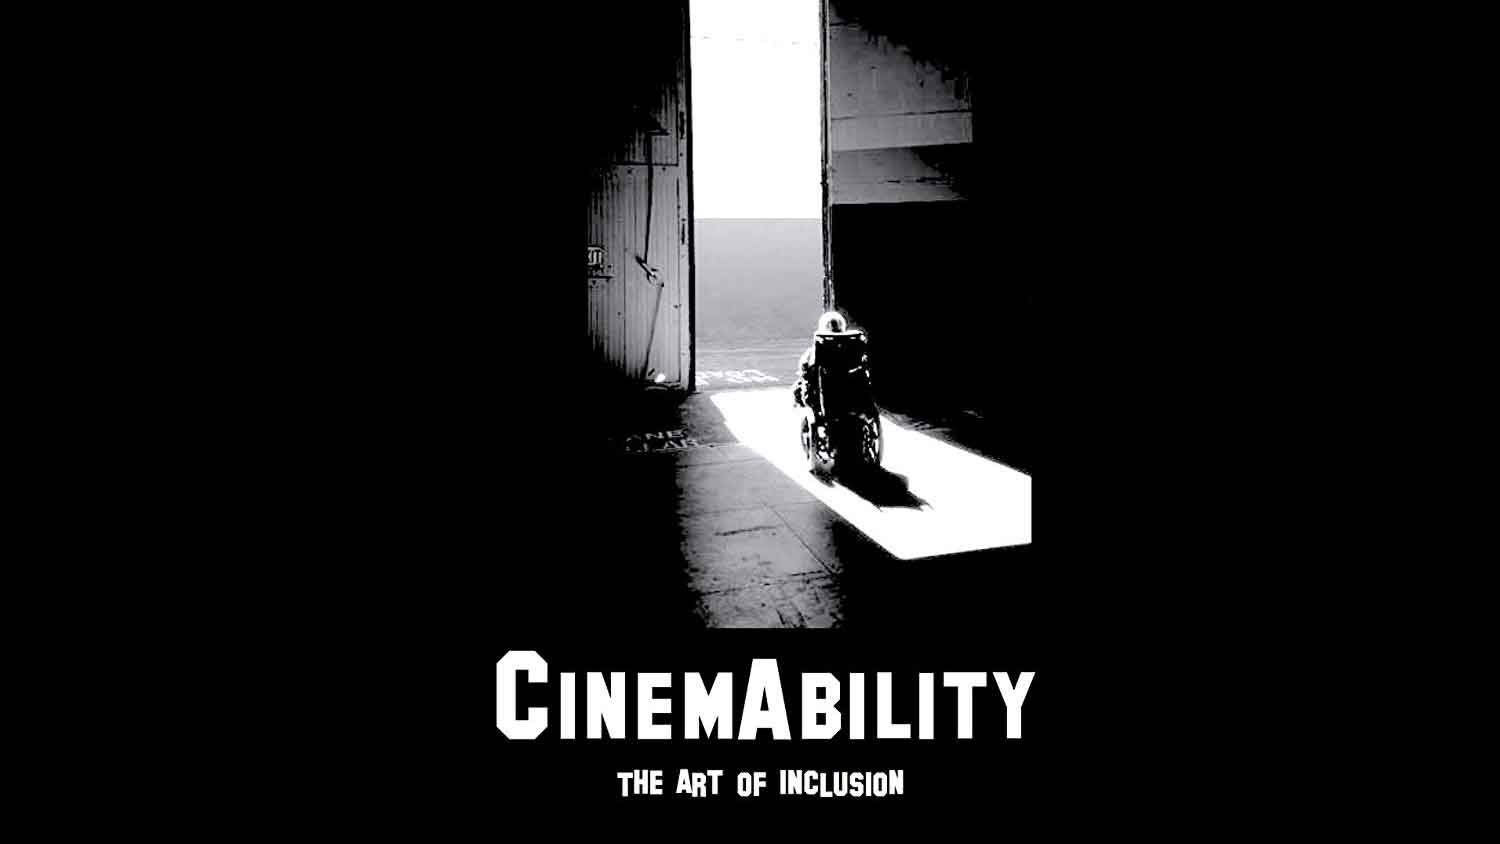 CinemAbility: The Art of Inclusion Review – How Cinema Portray's Disability - OC Movie Reviews - Movie Reviews, Movie News, Documentary Reviews, Short Films, Short Film Reviews, Trailers, Movie Trailers, Interviews, film reviews, film news, hollywood, indie films, documentaries